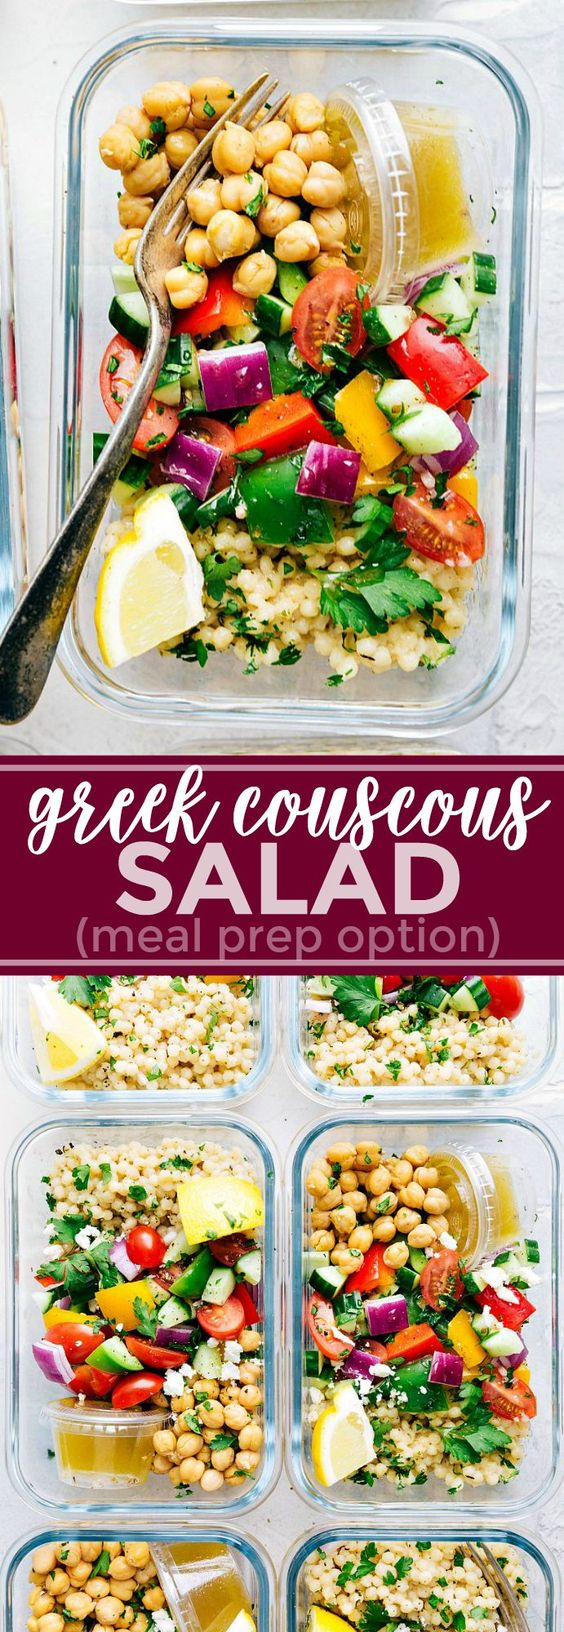 Meal Prep Greek Couscous Salad by Chelsea's Messy Apron